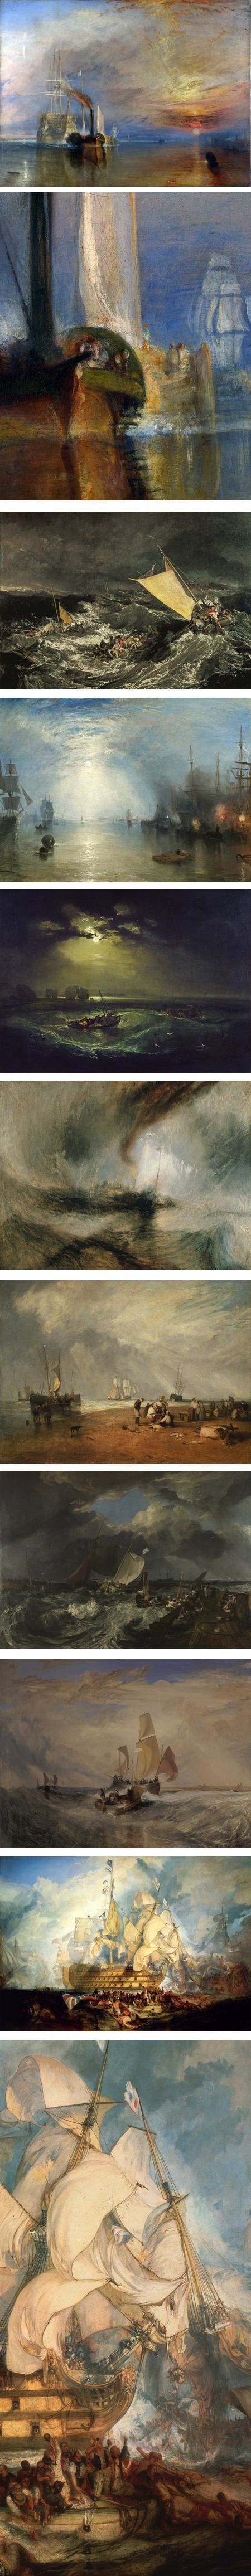 Turner & the Sea, JMW Turner at Maritime Museum